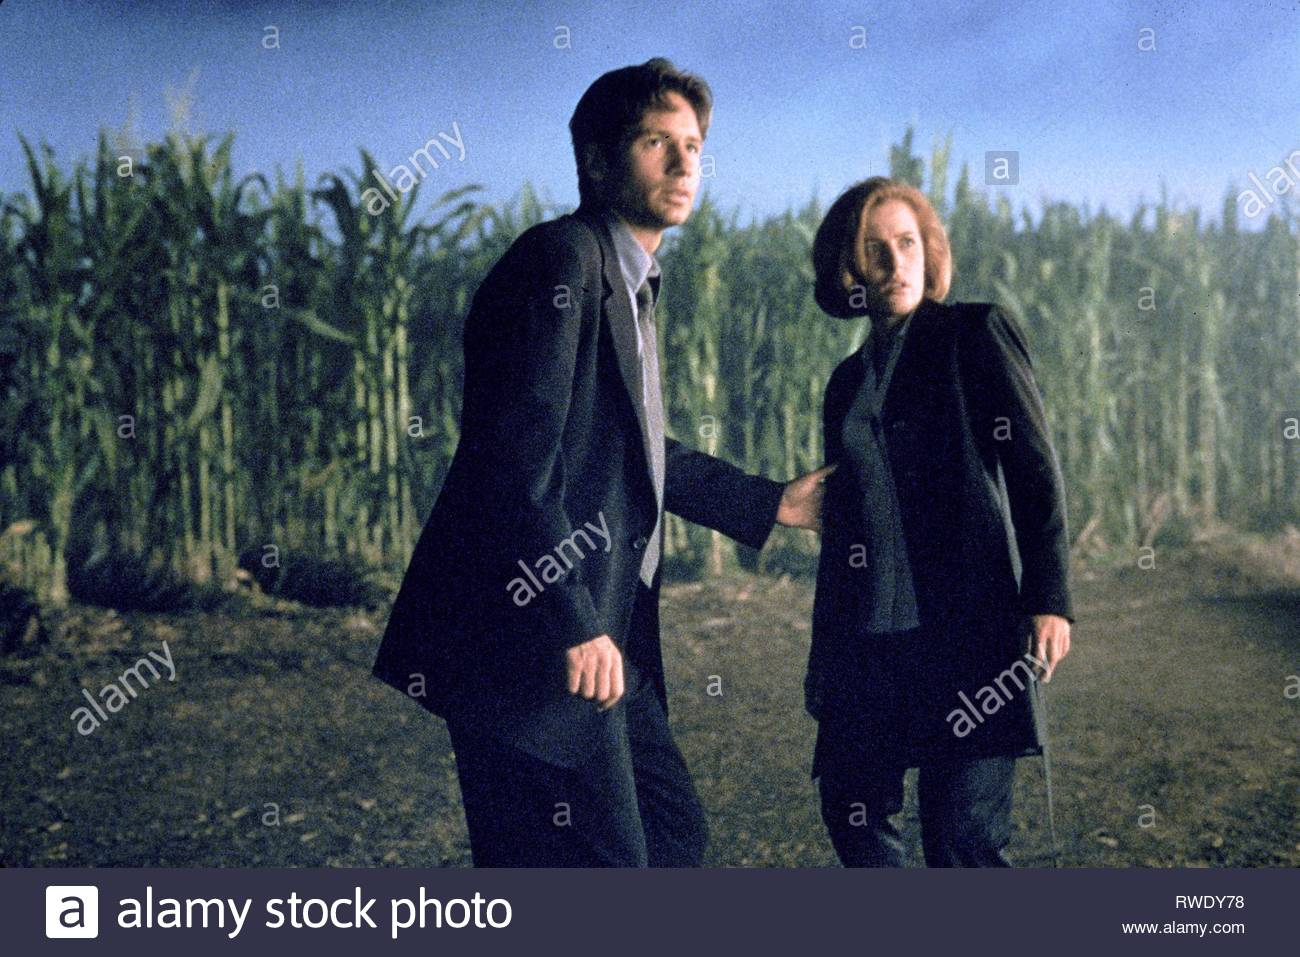 DUCHOVNY,ANDERSON, THE X FILES, 1998 - Stock Image